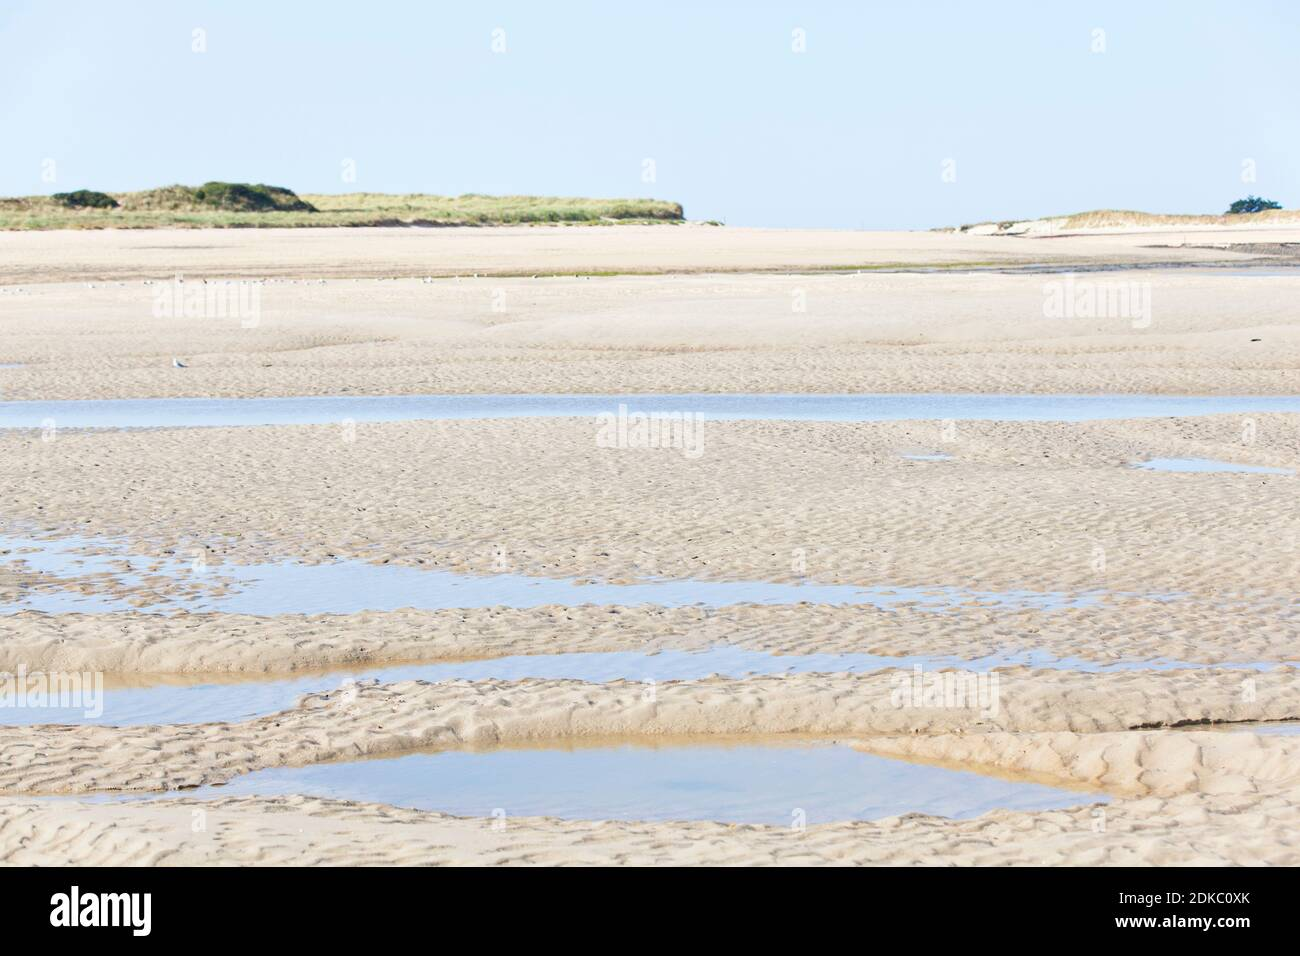 The beach at low tide in front of Portbail, Cotentin Peninsula, Normandy, France Foto de stock